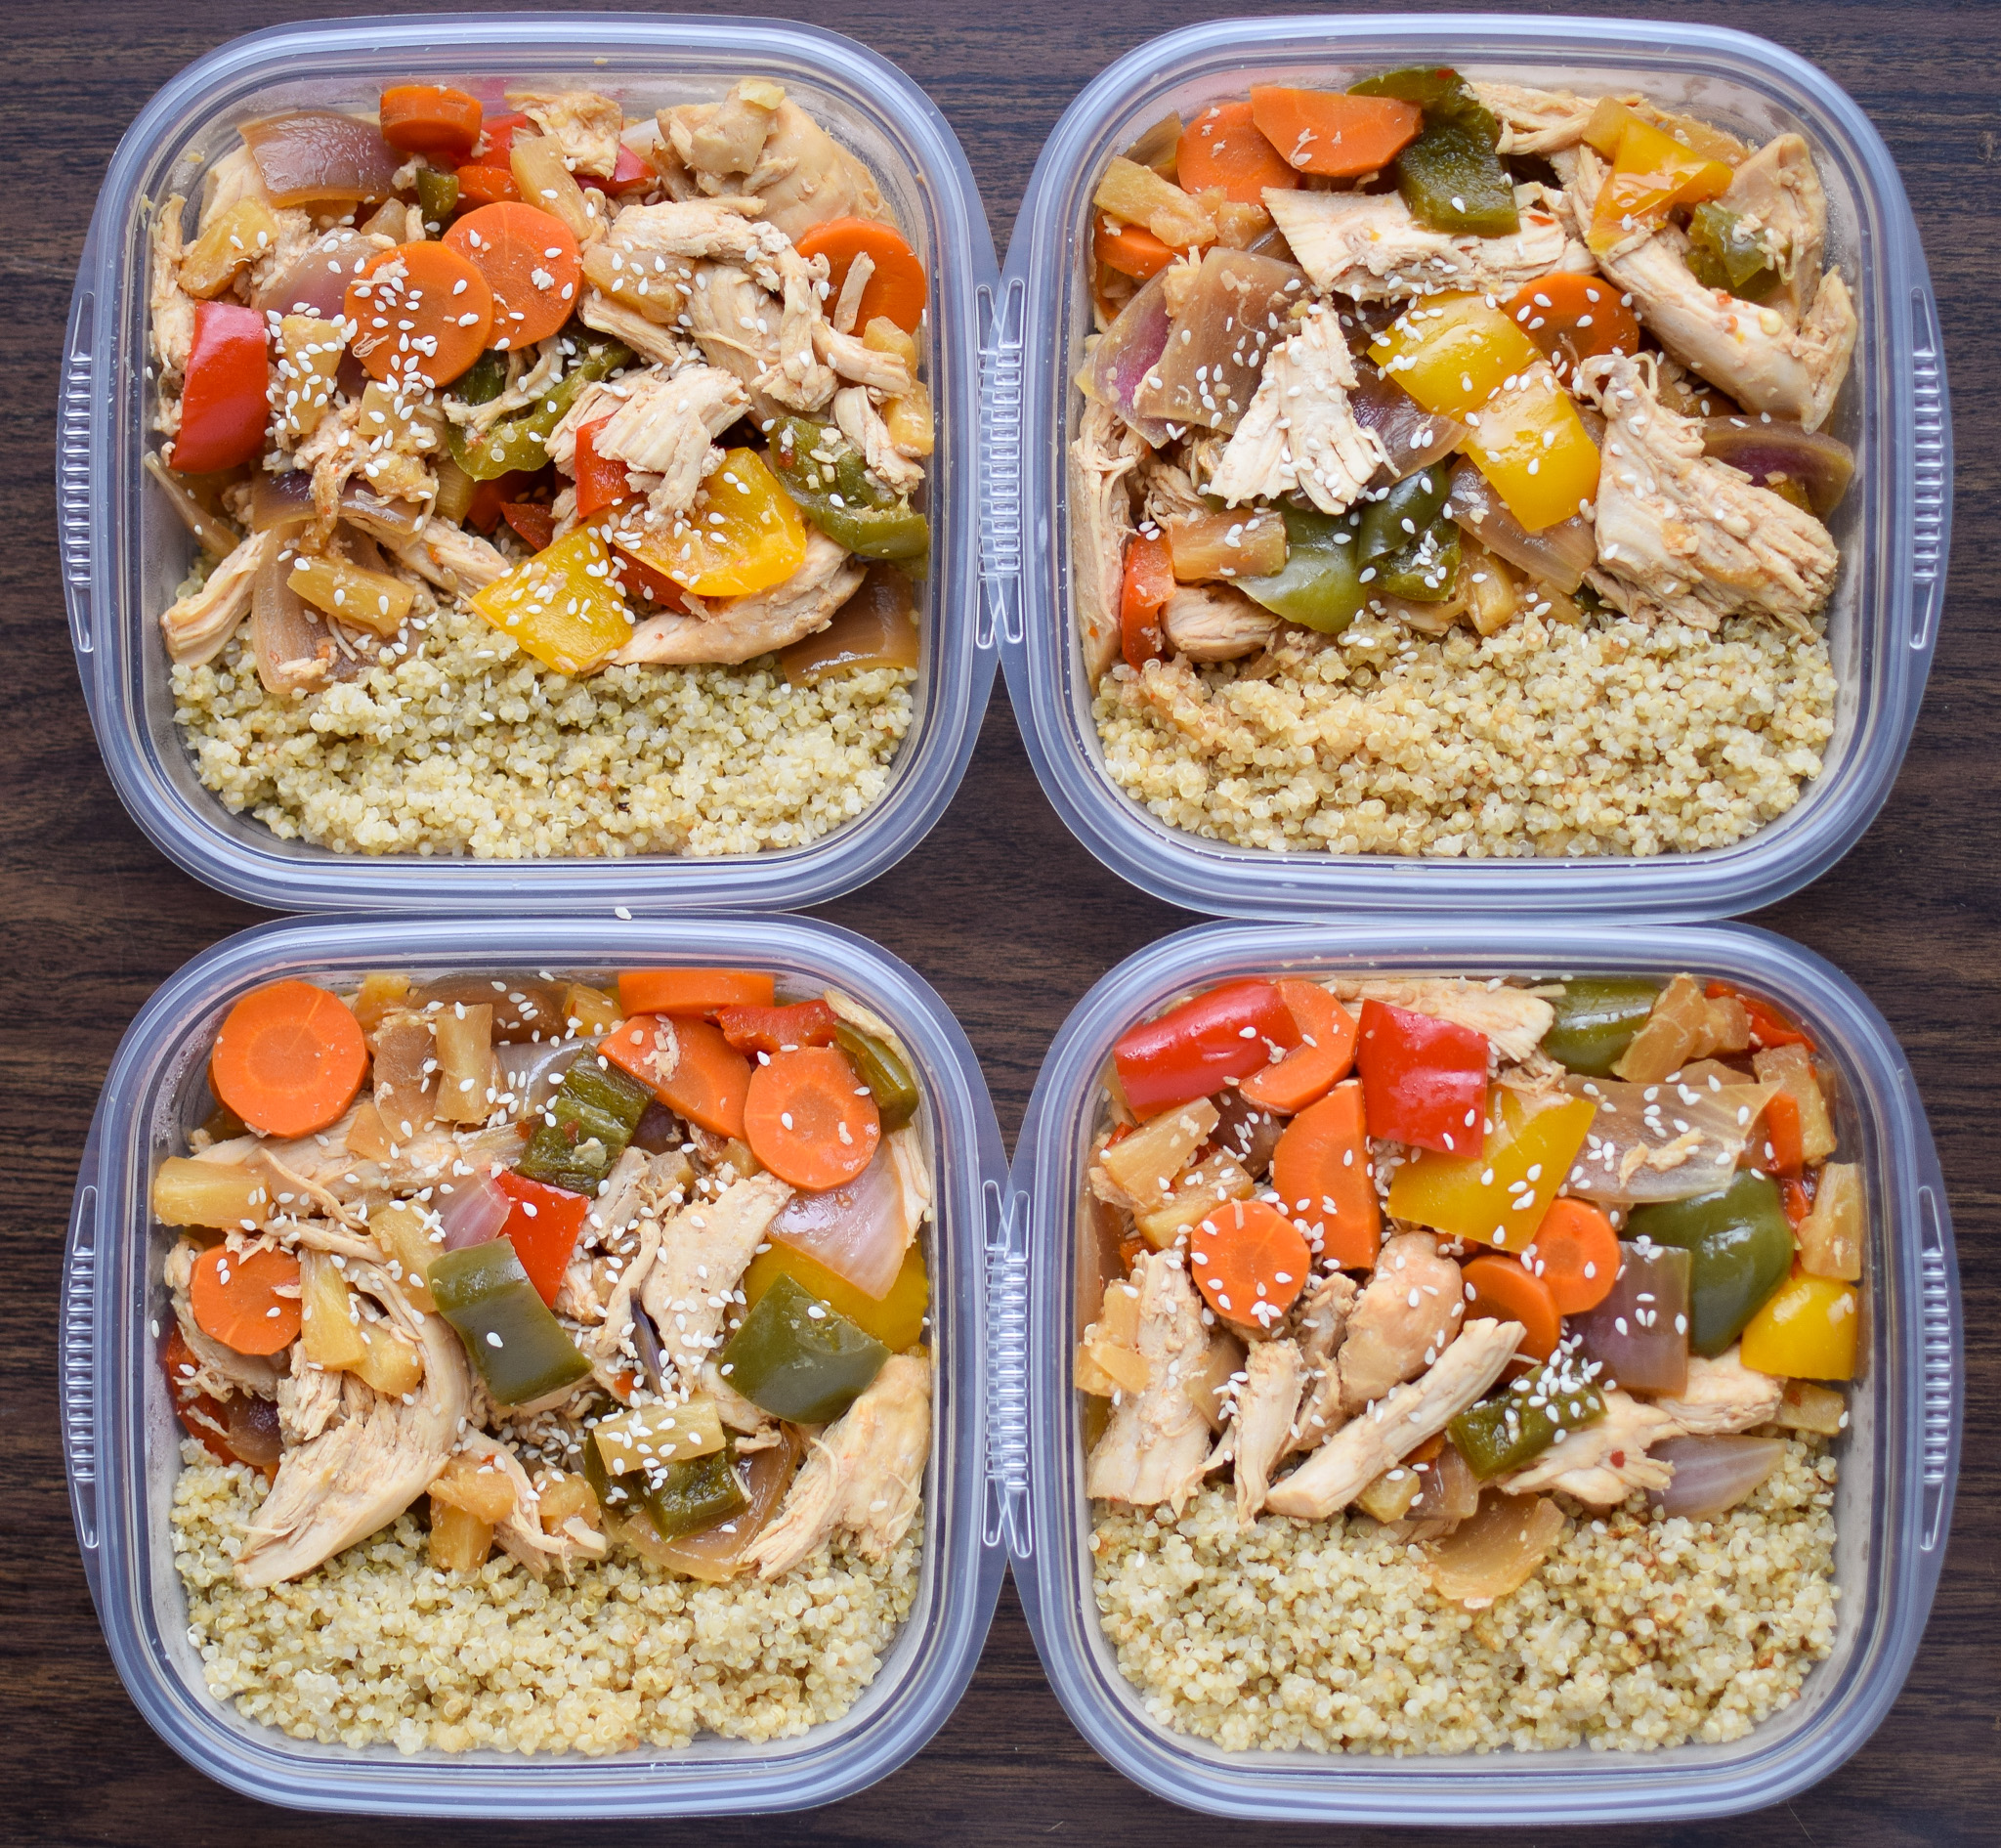 Sunday Meal Prep for November 6th, 2016 - Sunday Meal Prep Steps, shopping list, macro counts and more! - ProjectMealPlan.com